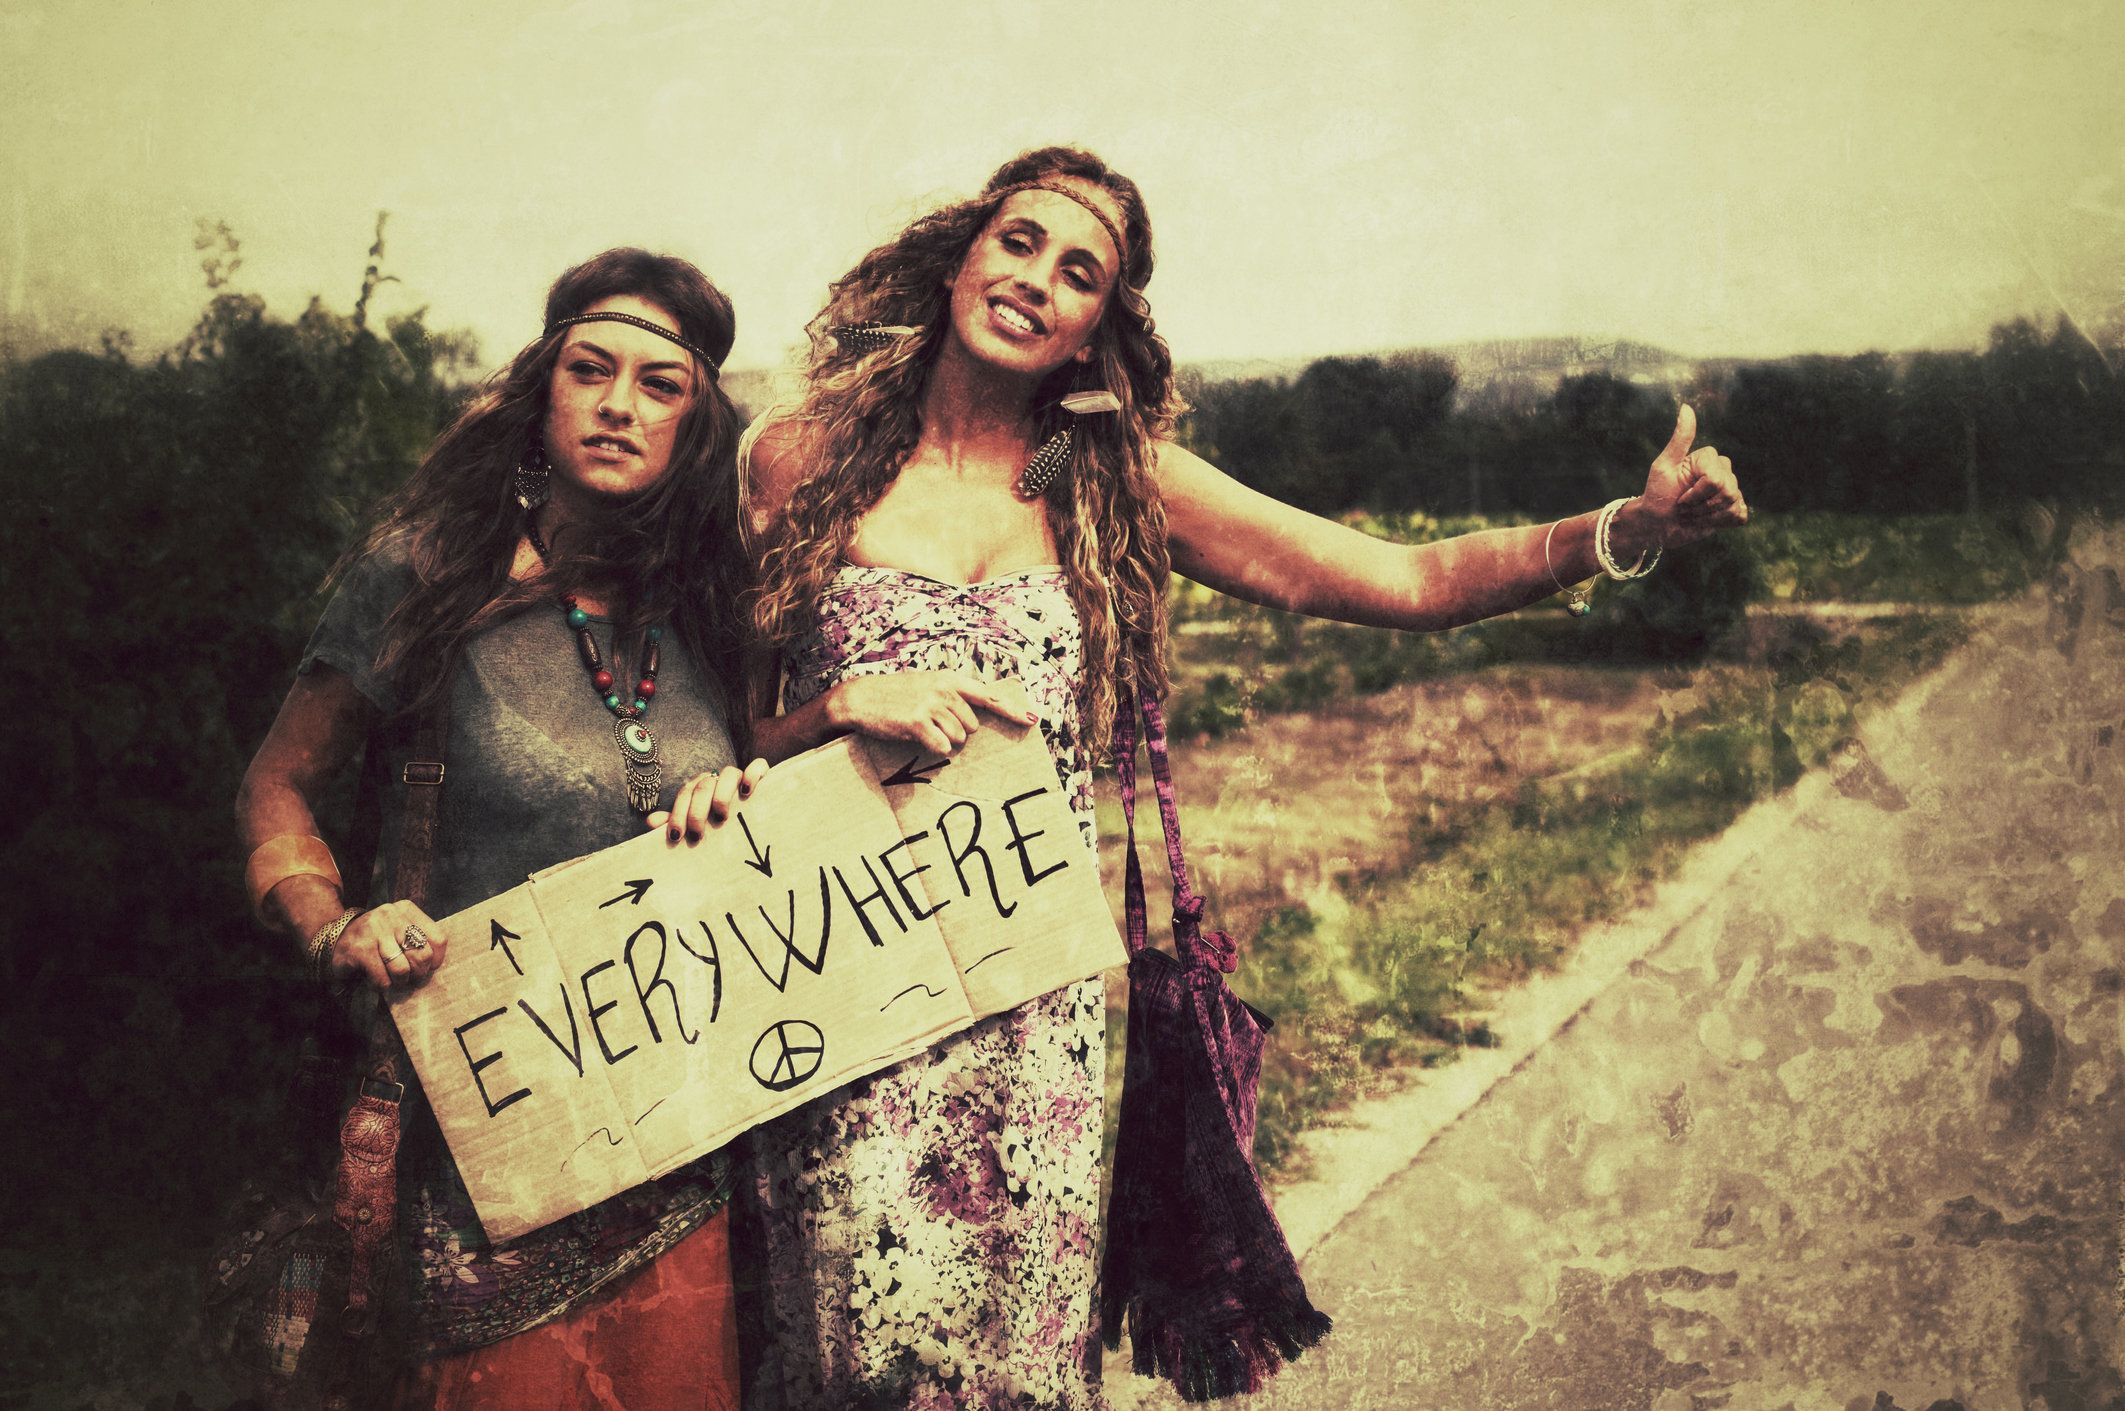 Hitchiking Hippies Women. 1970s style. Age effects added.